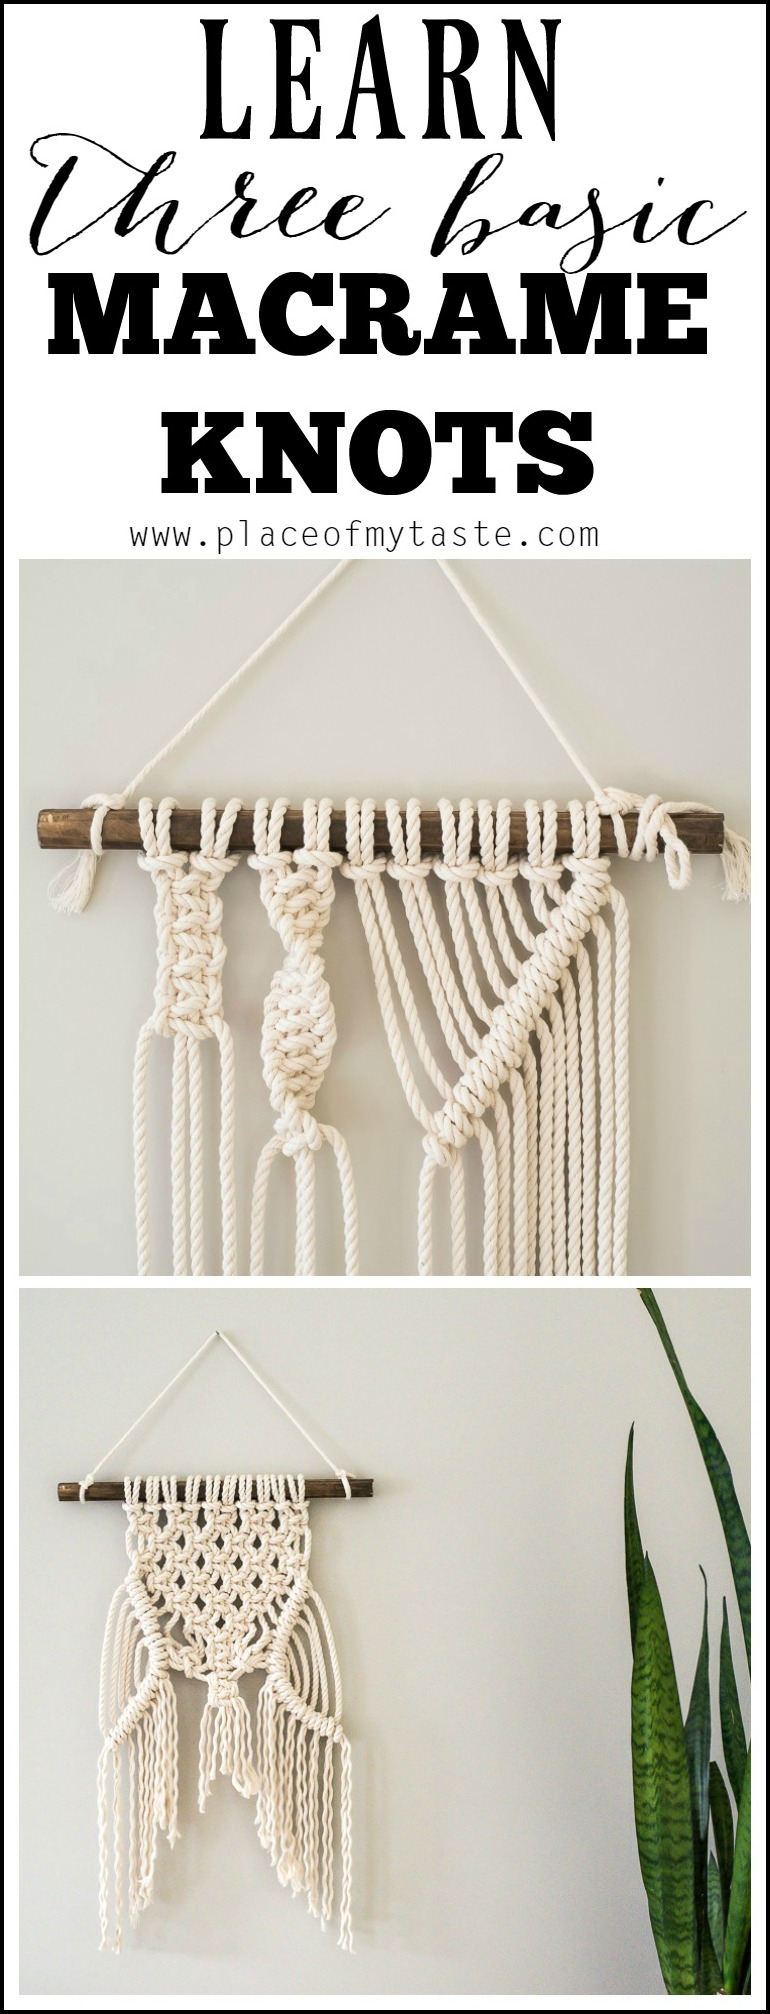 THREE BASIC MACRAME KNOTS TO CREATE YOUR WALL HANGING.